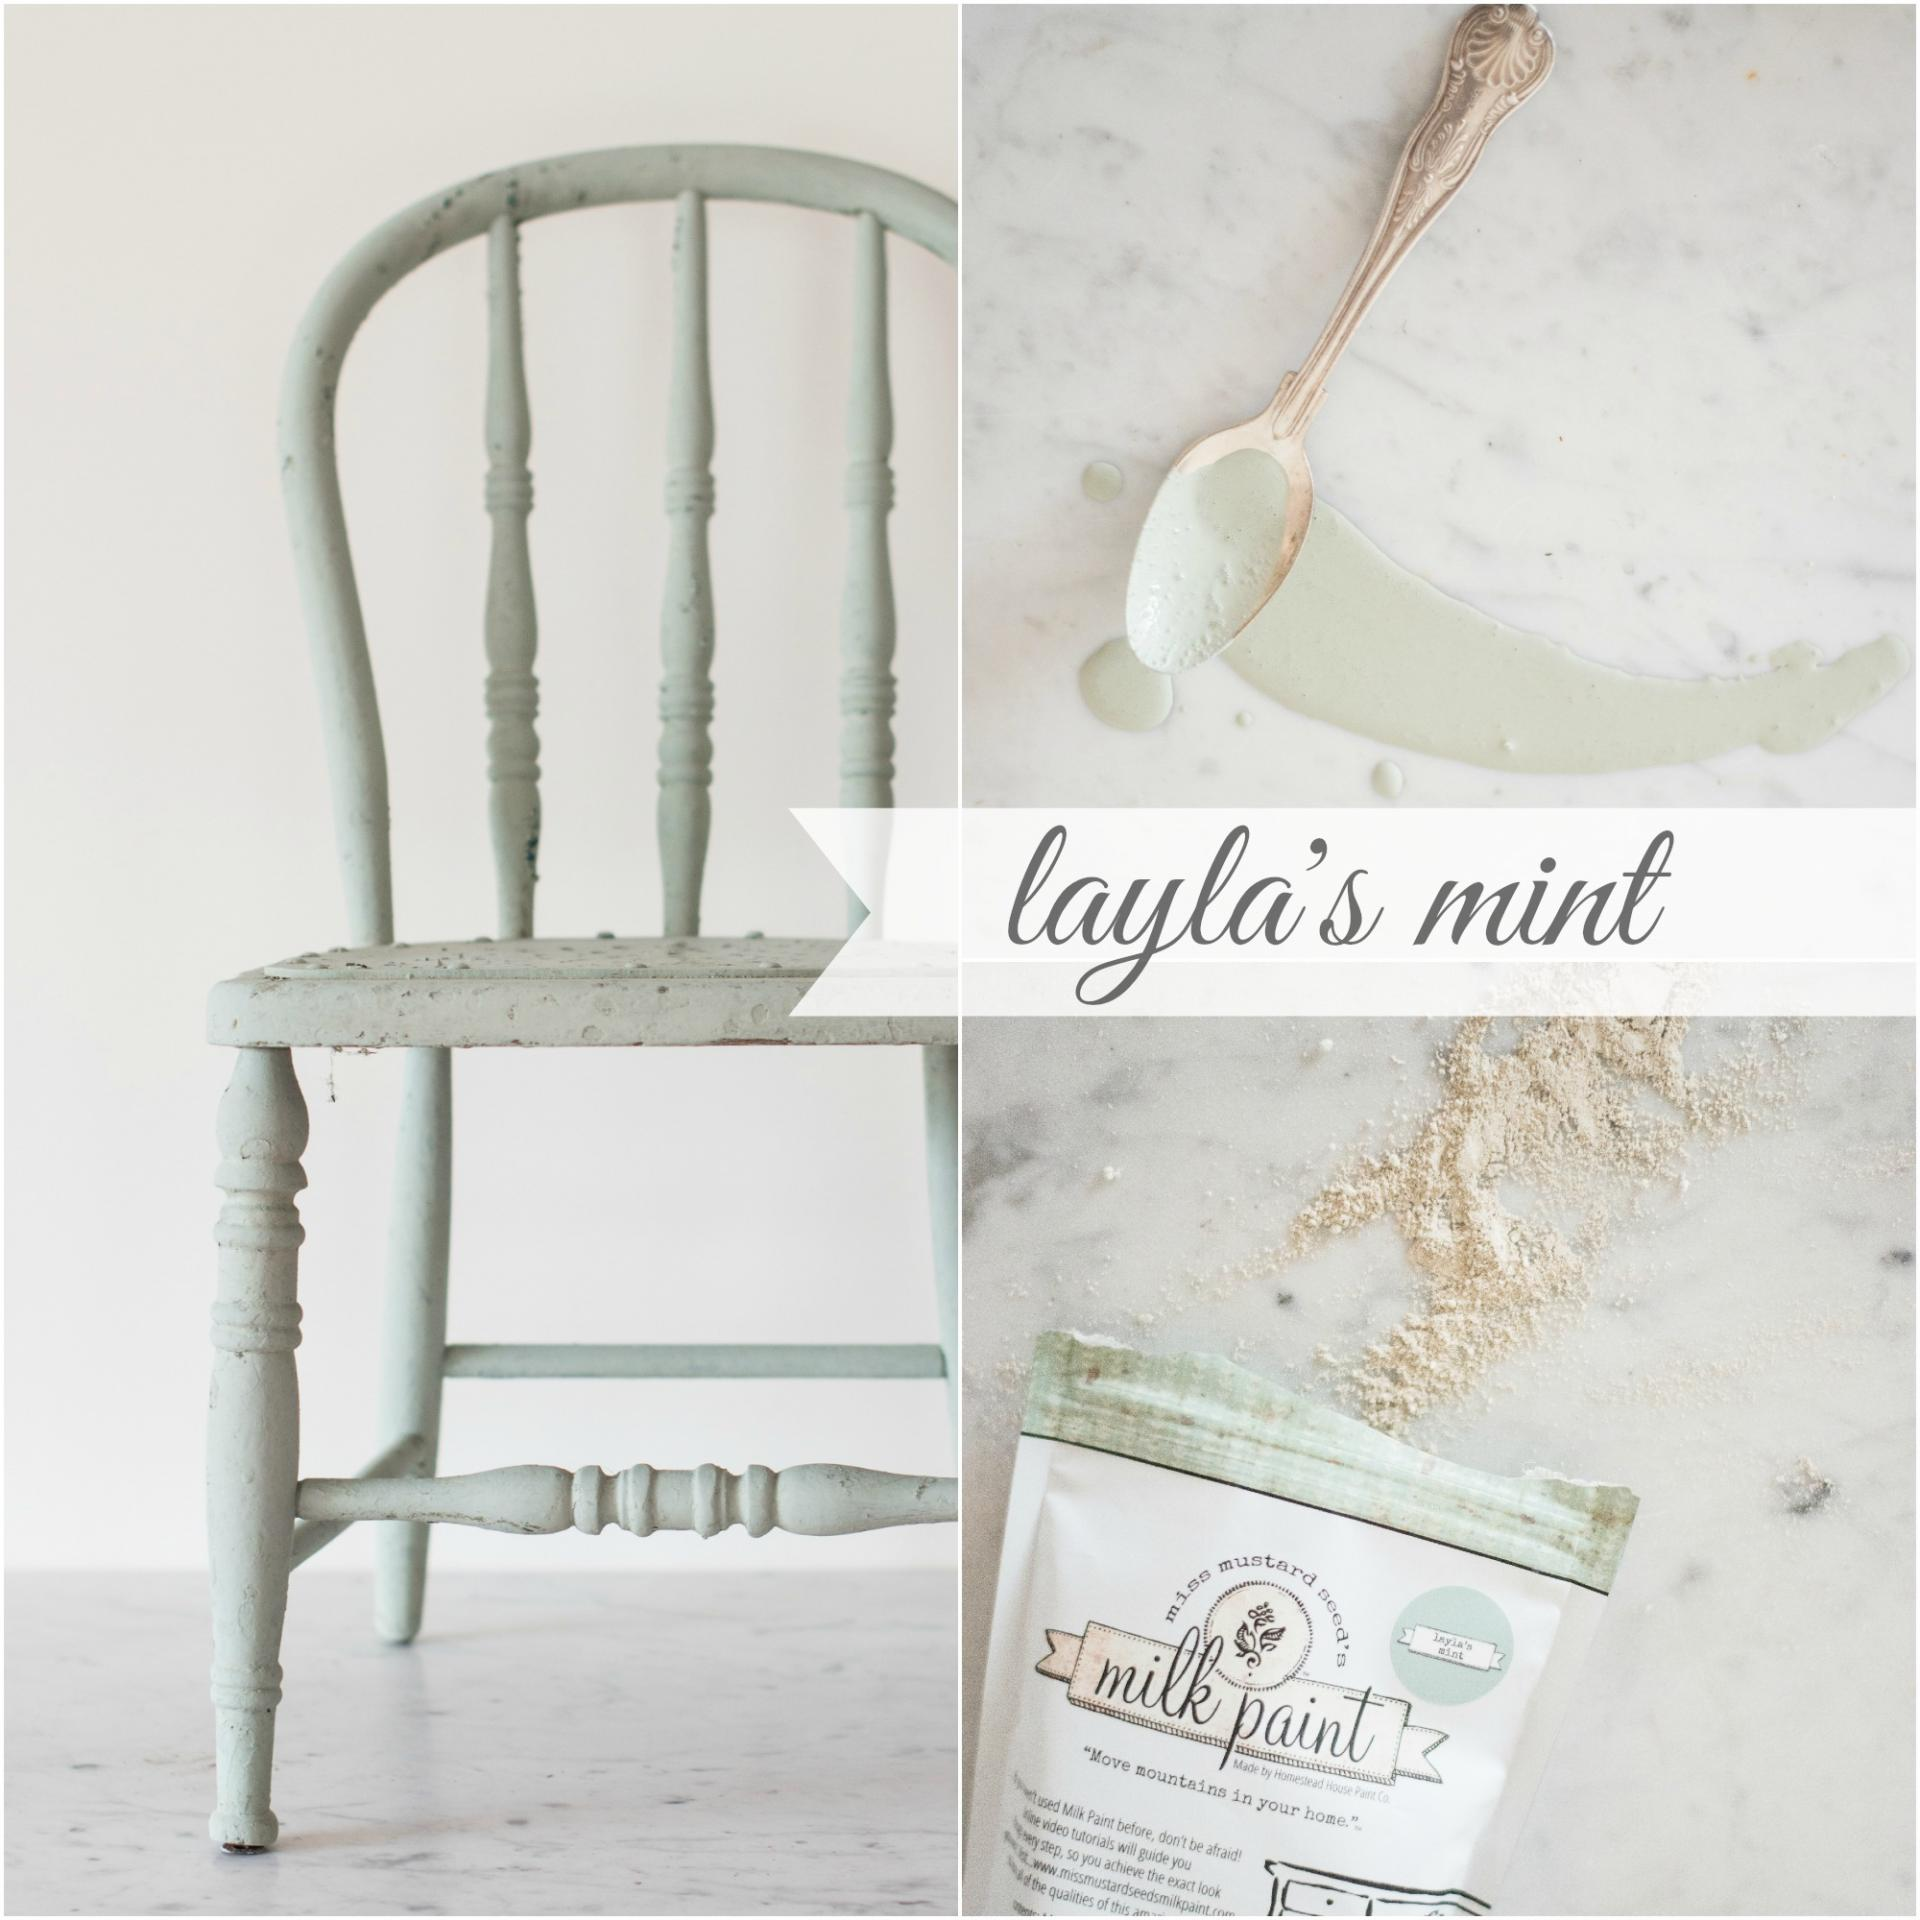 Laylas mint collage 1